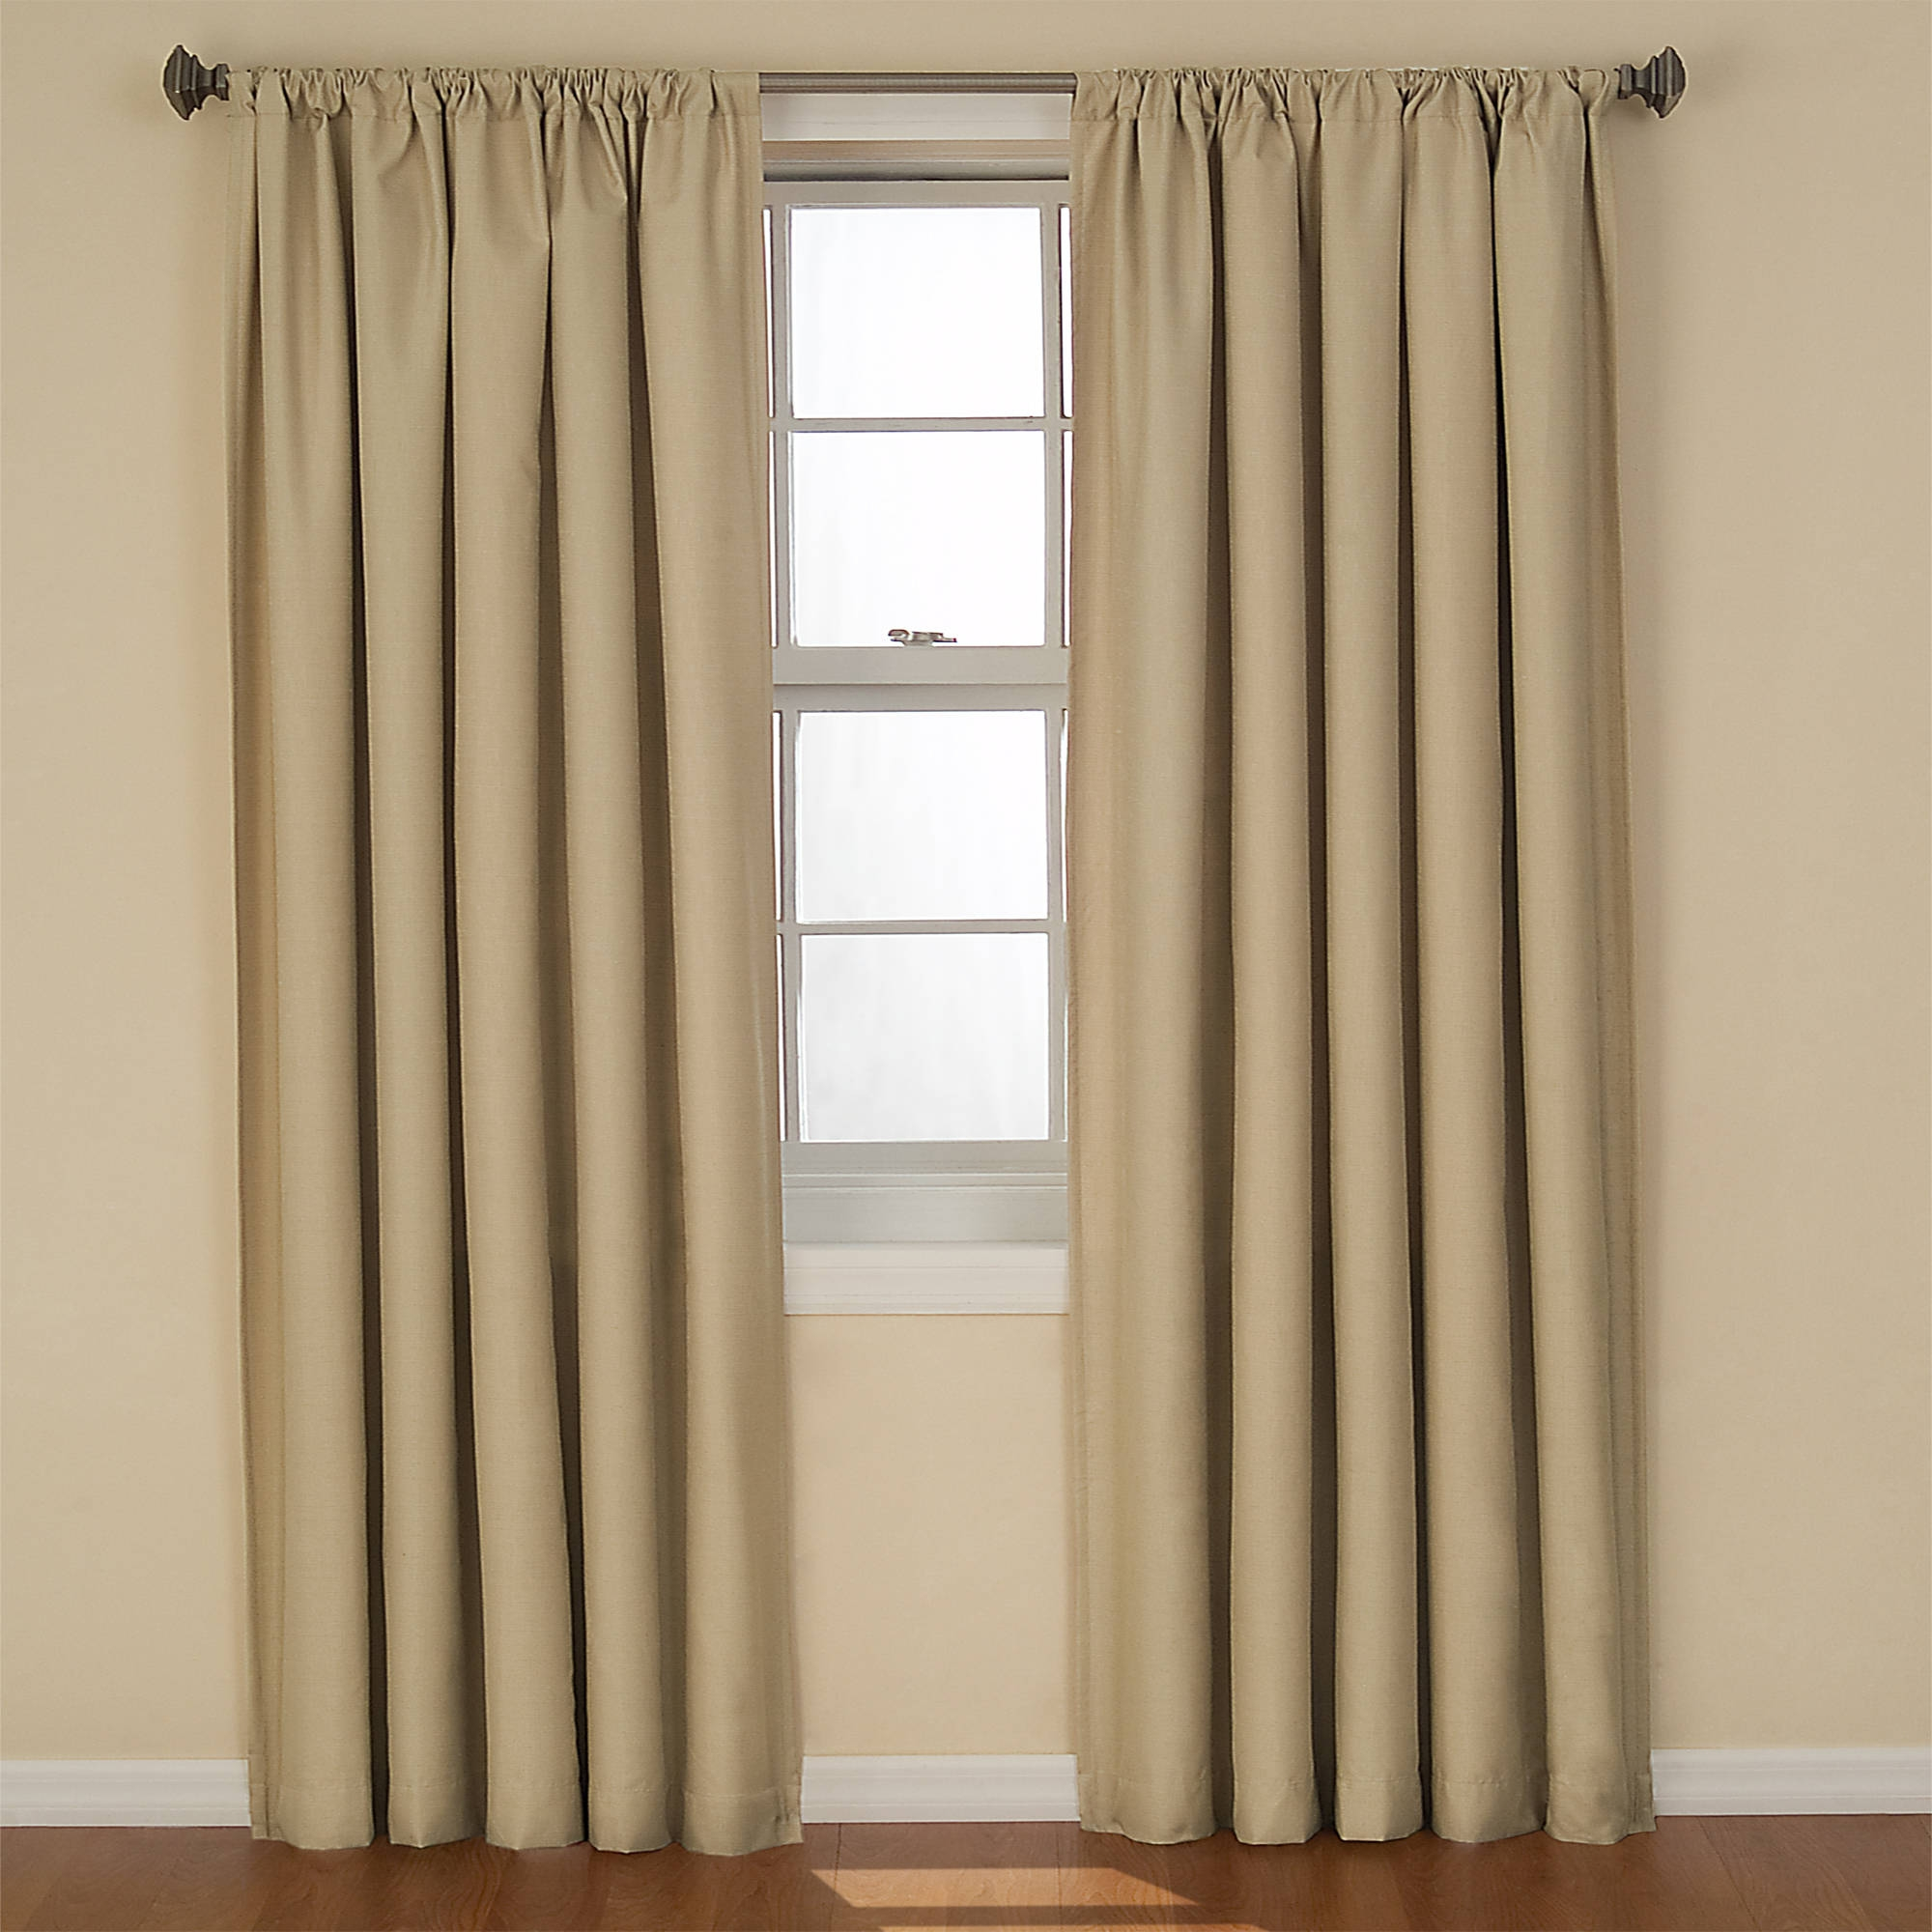 Eclipse Curtains Kendall Blackout Energy Efficient Curtain Panel Regarding Hotel Quality Blackout Curtains (Image 7 of 15)